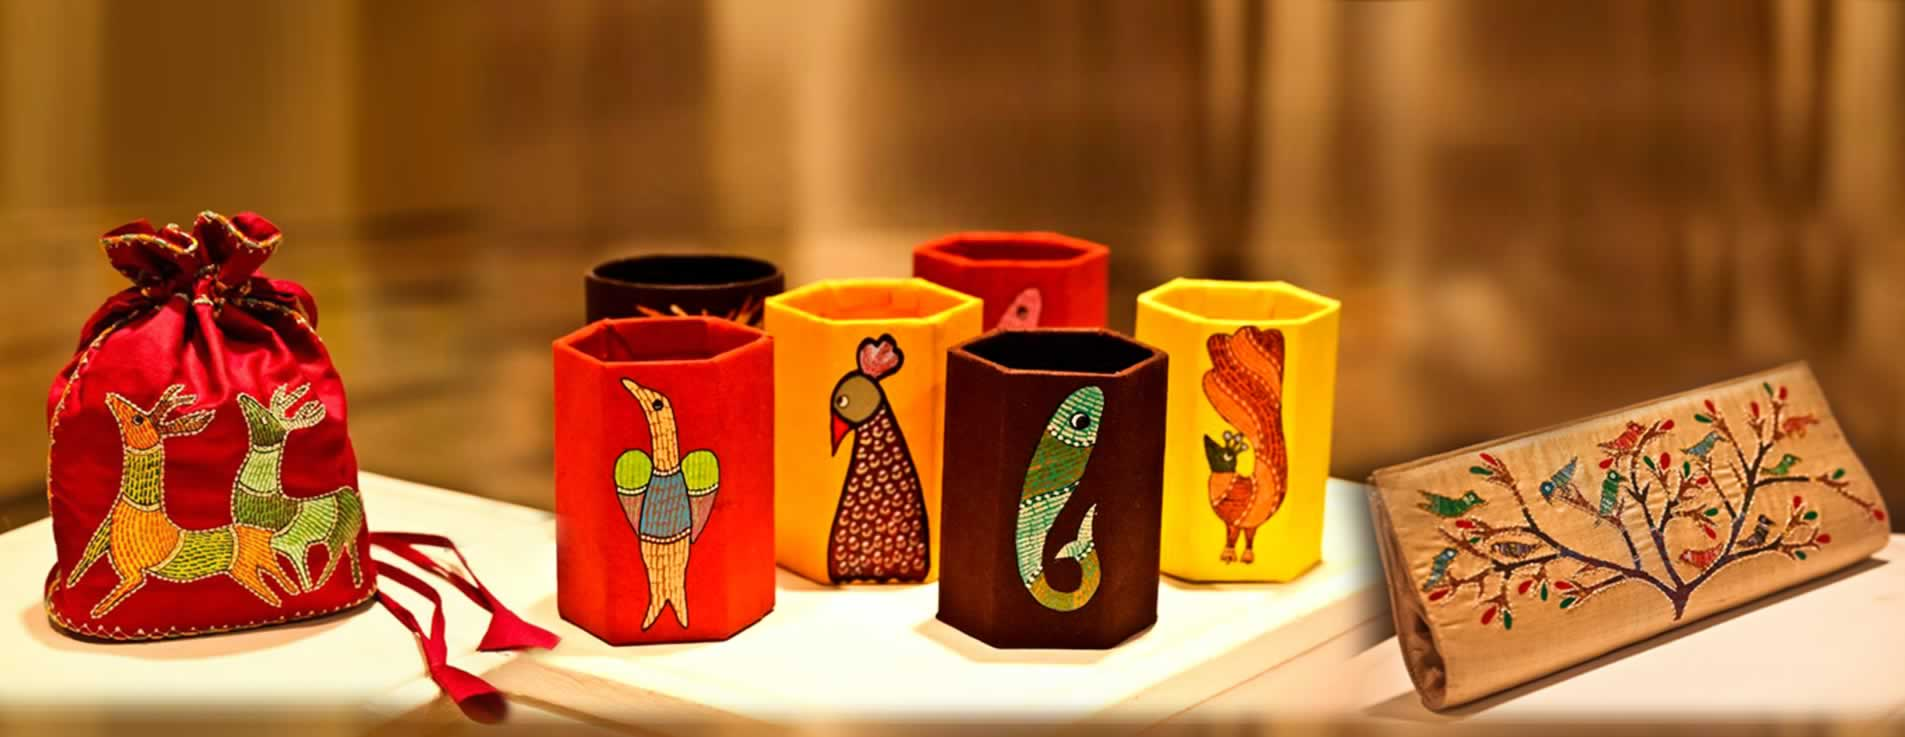 sell handicraft items online